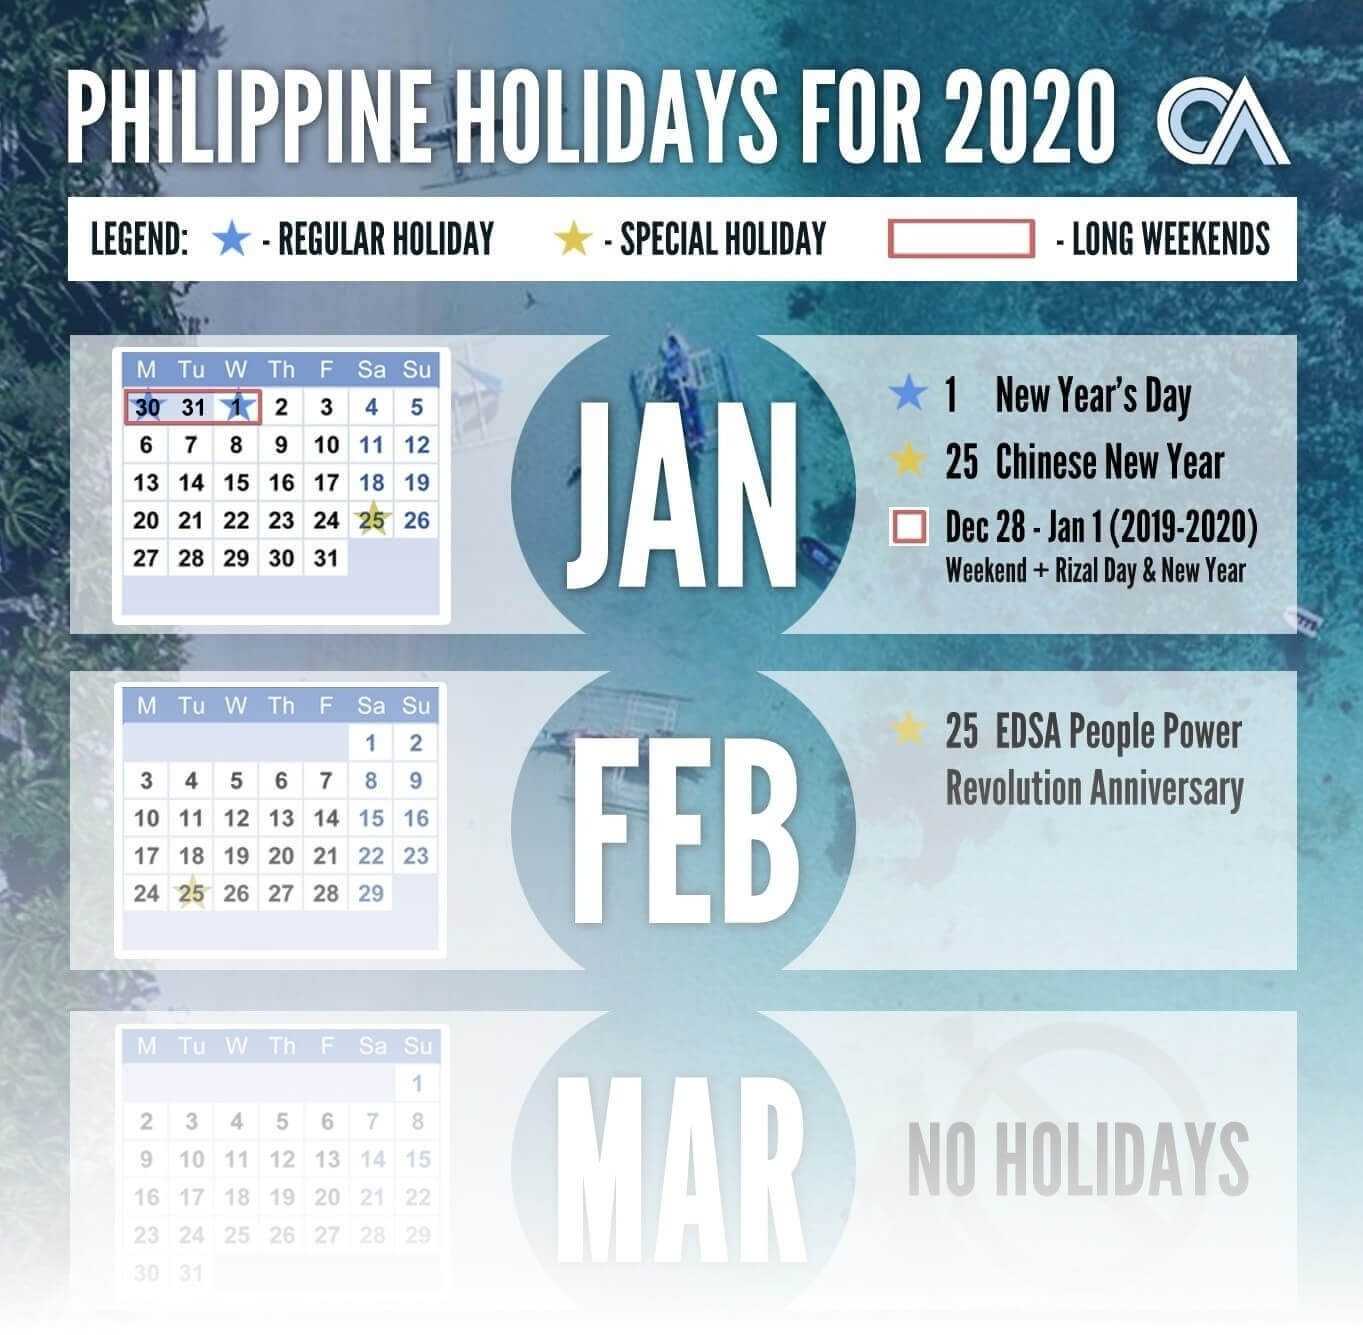 Philippine Holidays 2020 | Outsource Accelerator with regard to Special Dates Of The Year 2020